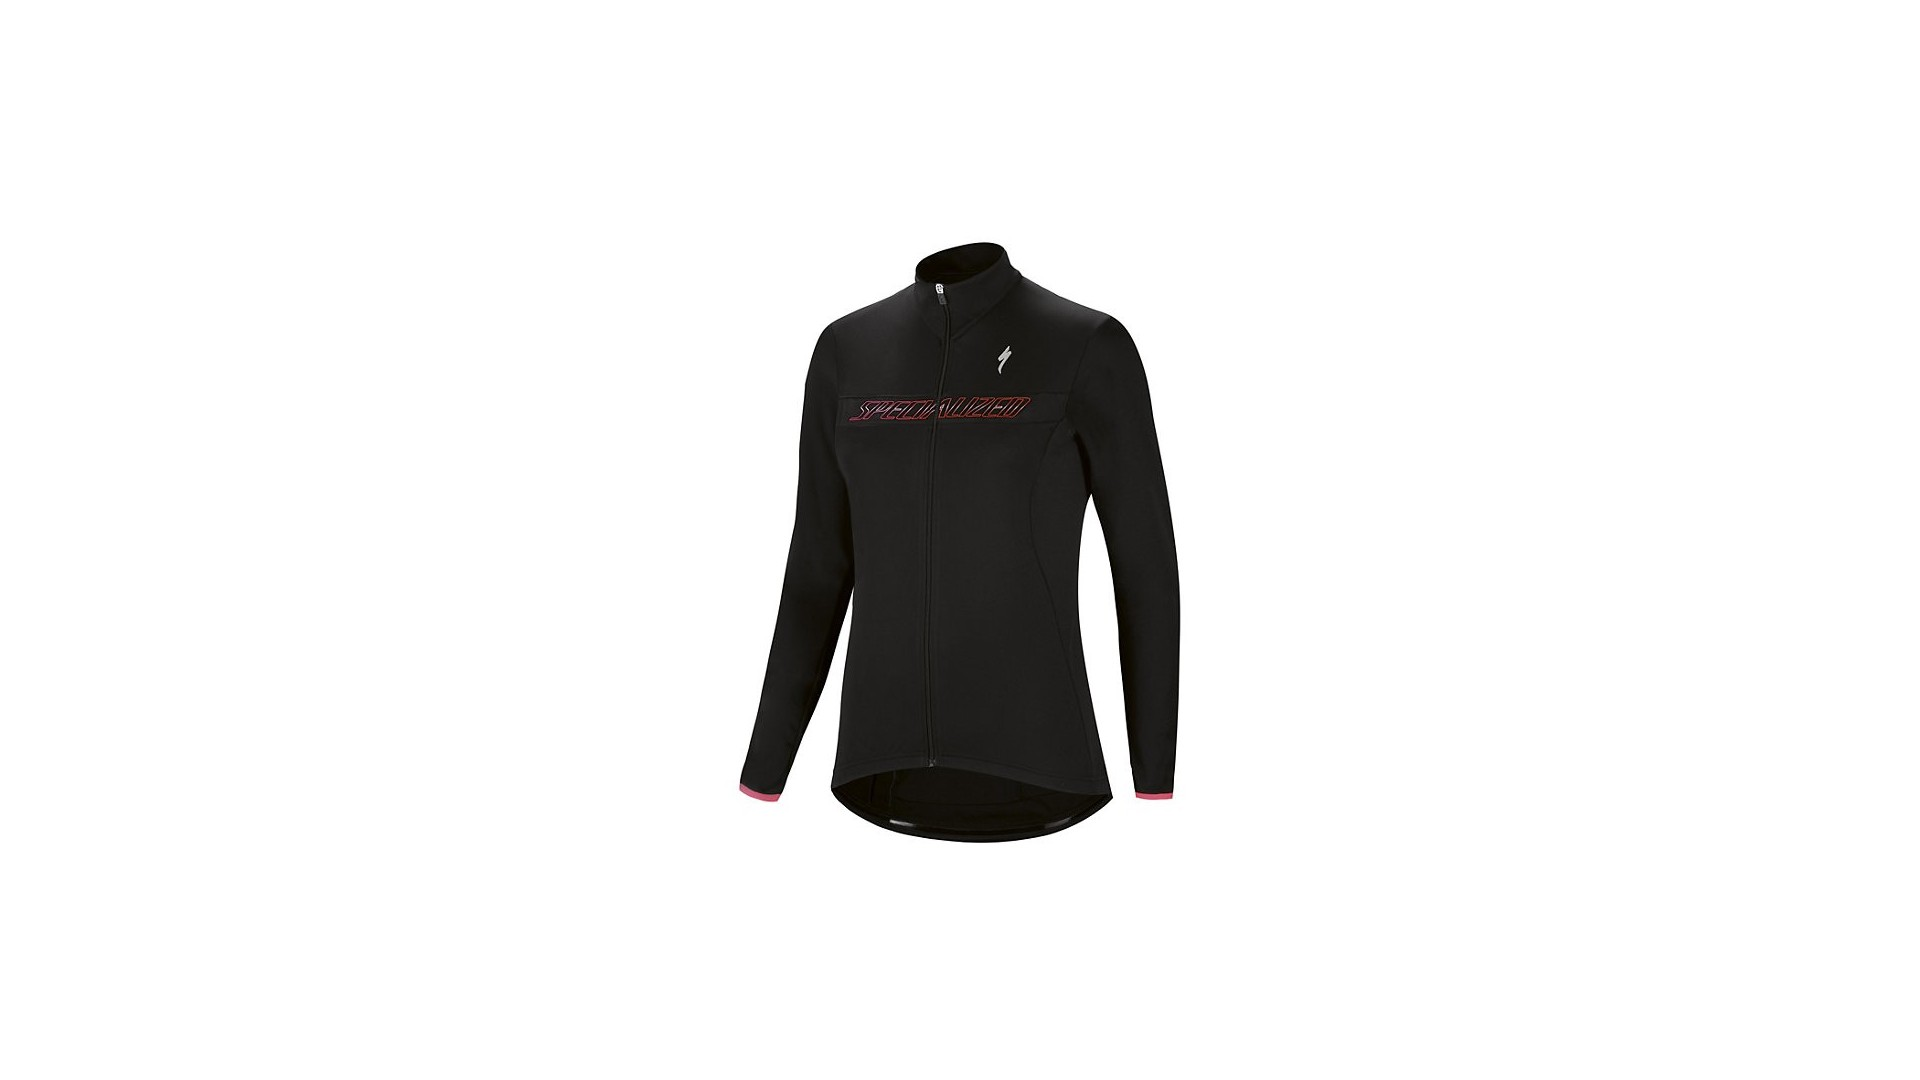 Therminal Rbx Sport Logo Jersey Specialized Woman Black/Pink 1 IBKBike.es